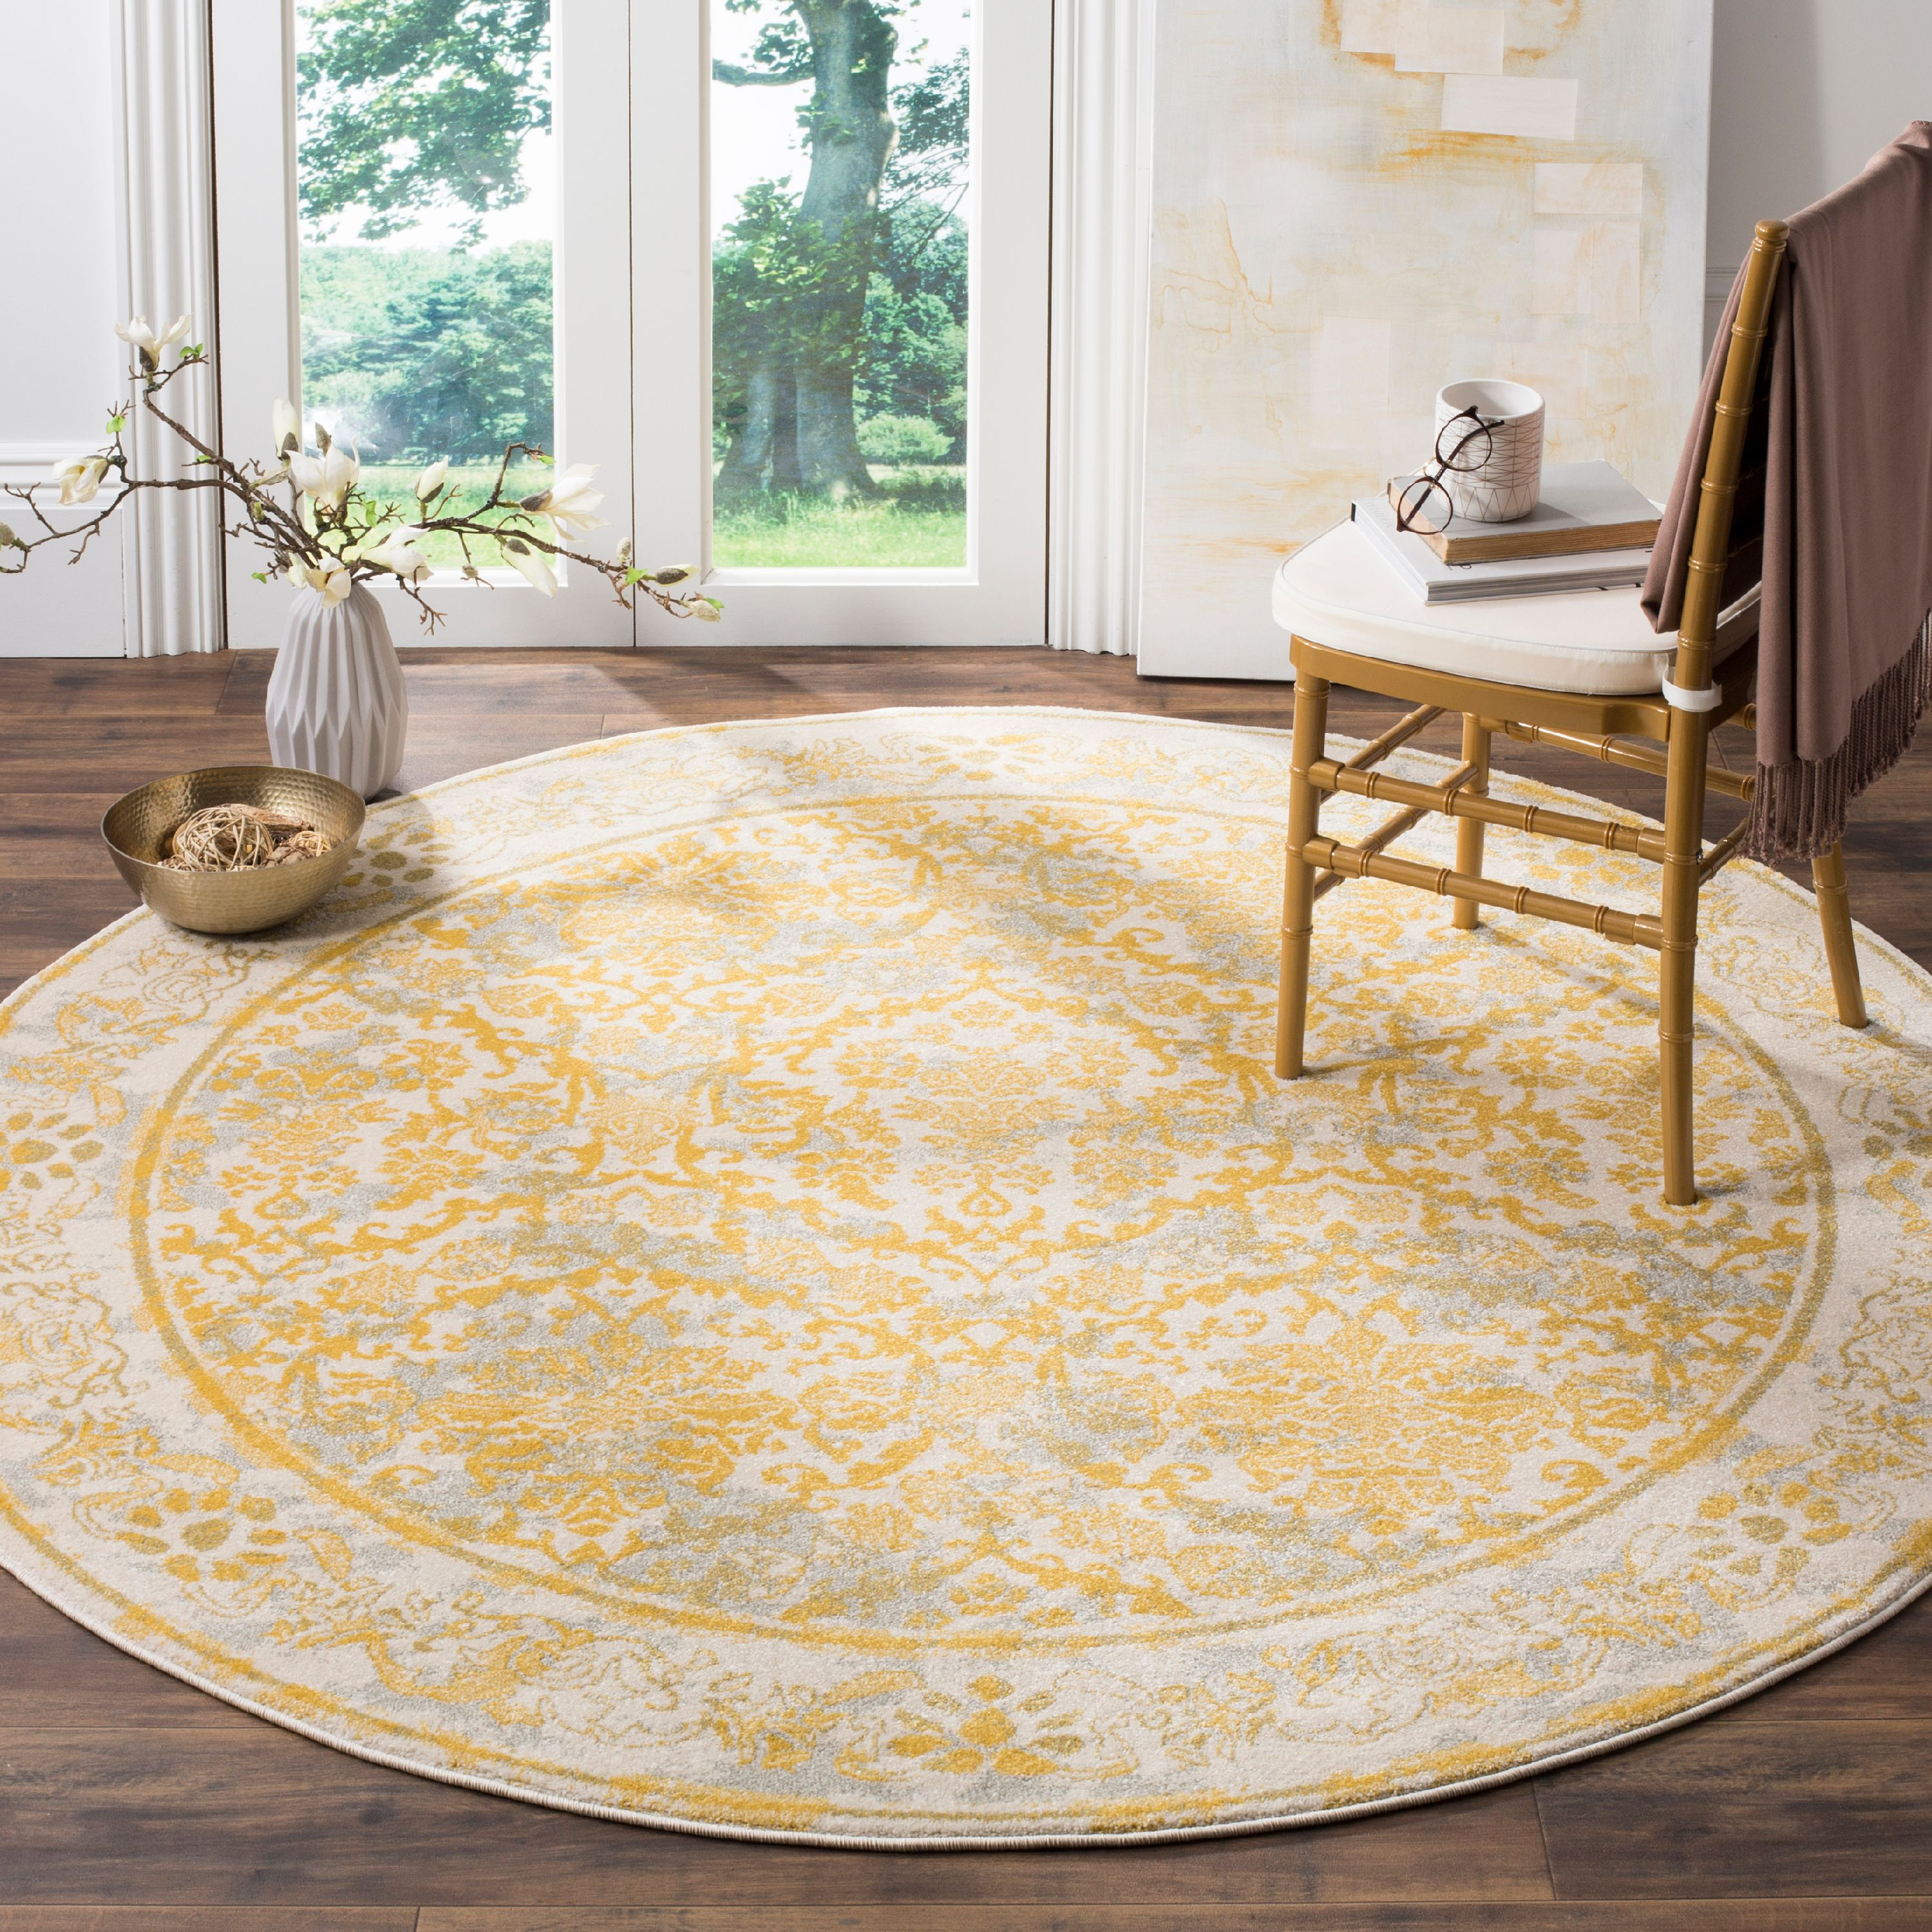 Safavieh Evoke Lorna Traditional Area Rug